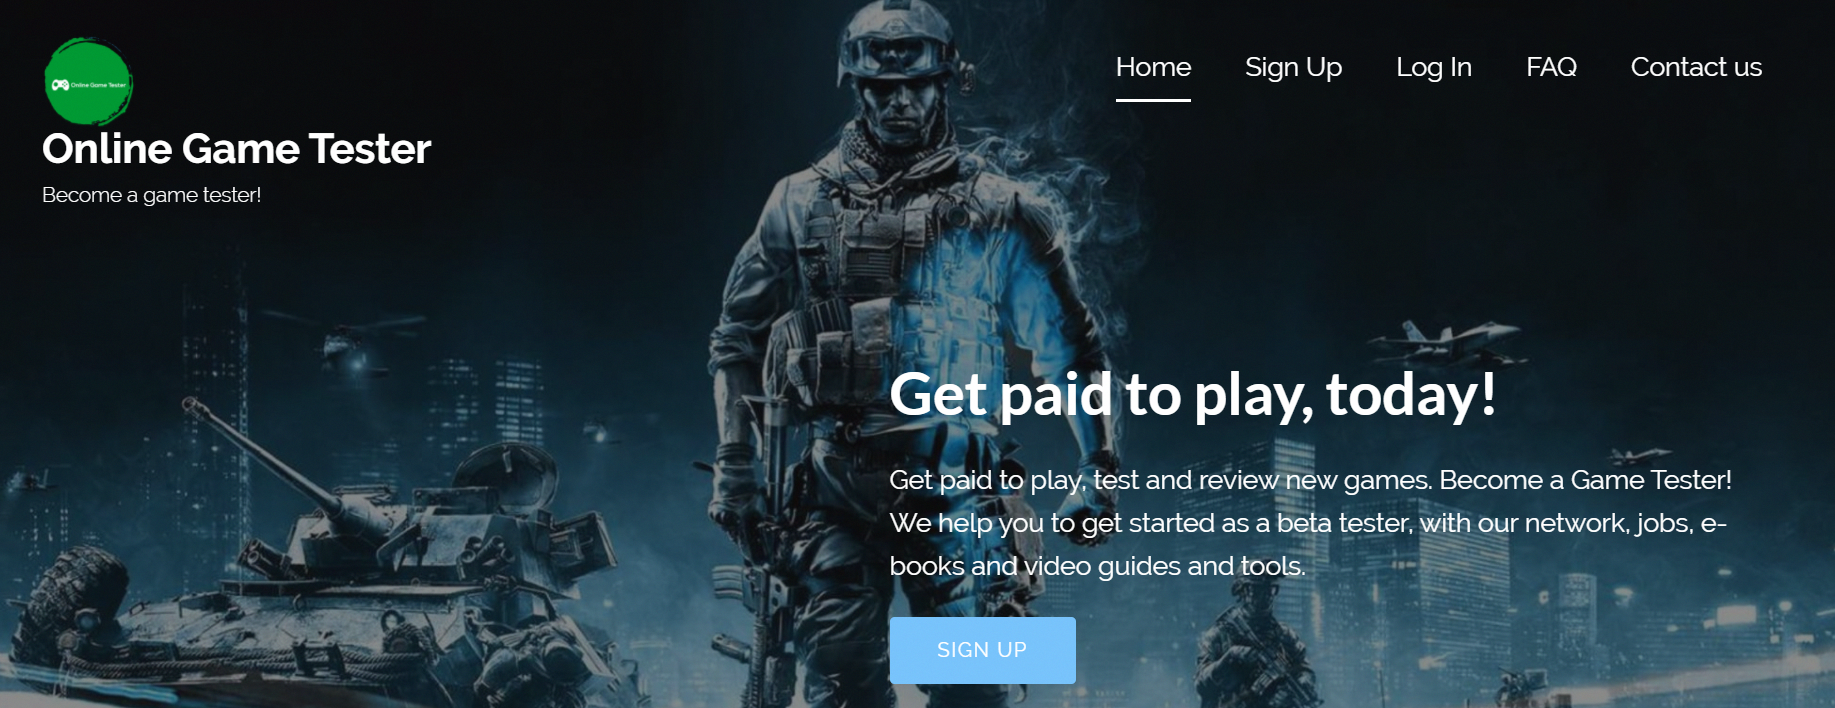 Get paid to play, test and review new games. a Game